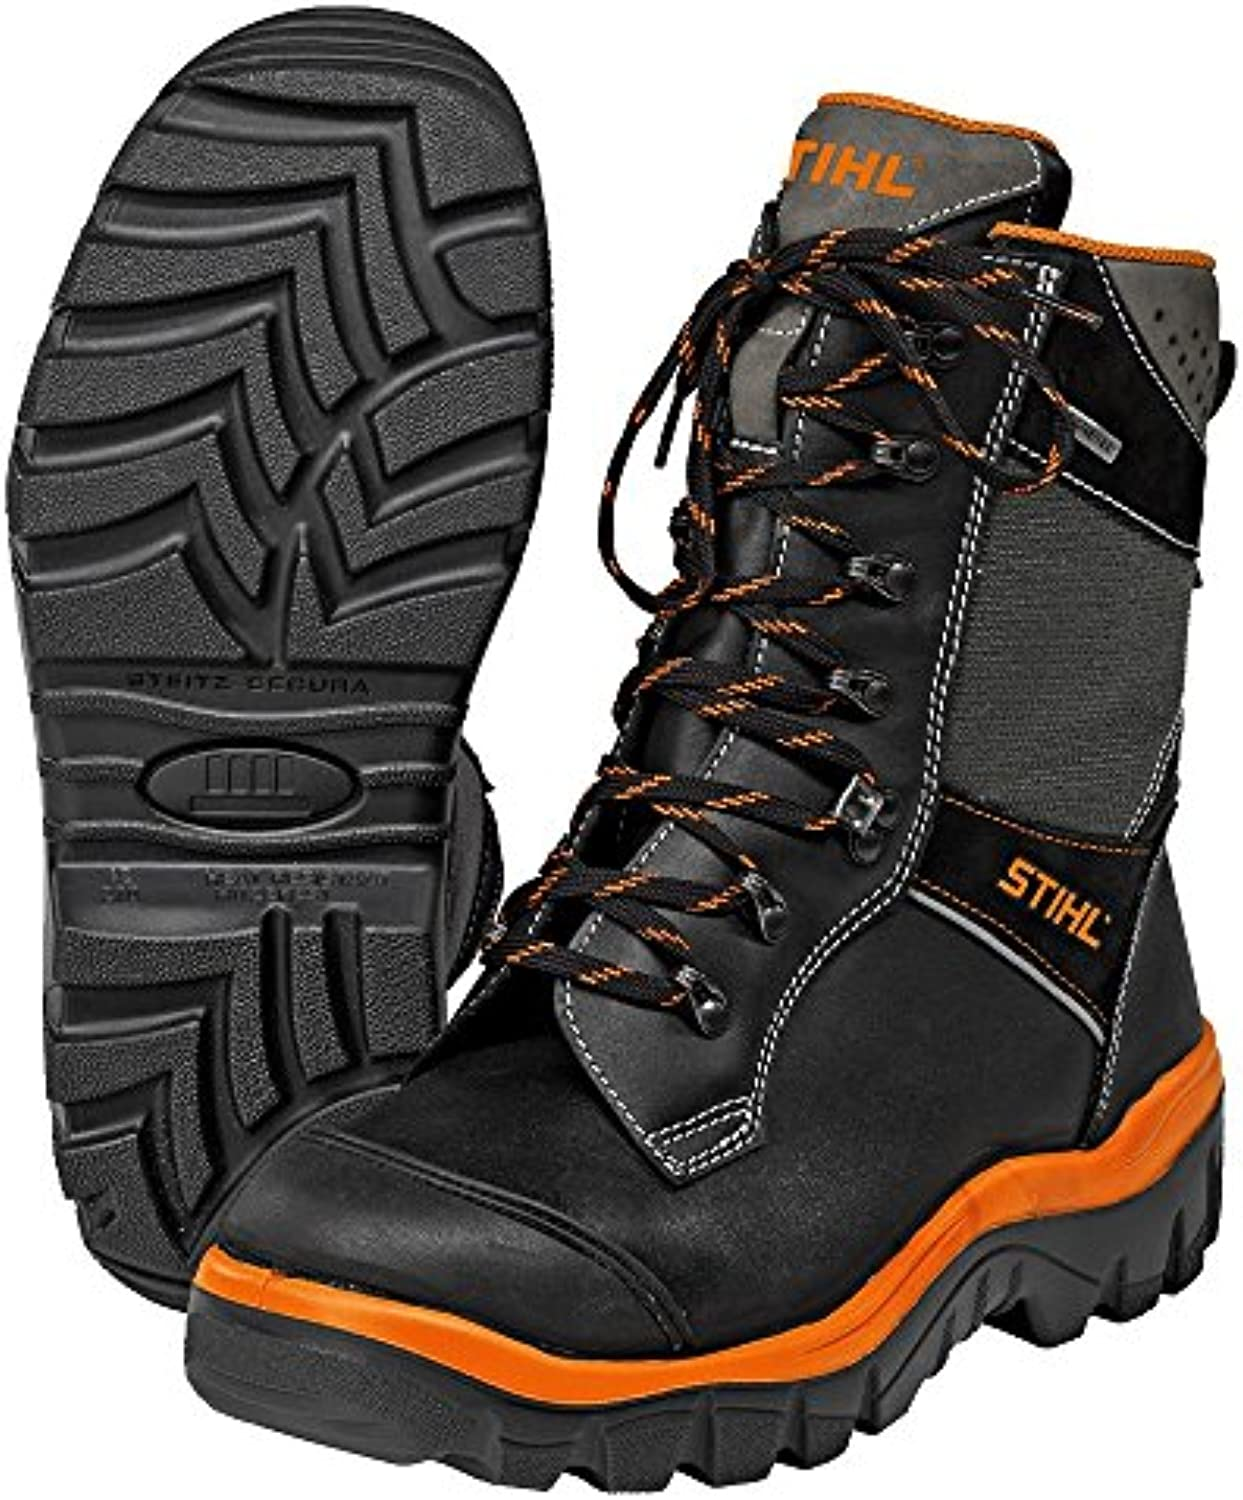 stihl 00008849844 garde garde garde forestier gtx botte taille 10 b077rygd8p parent & agrave;   Une Performance Fiable  4e8bfe